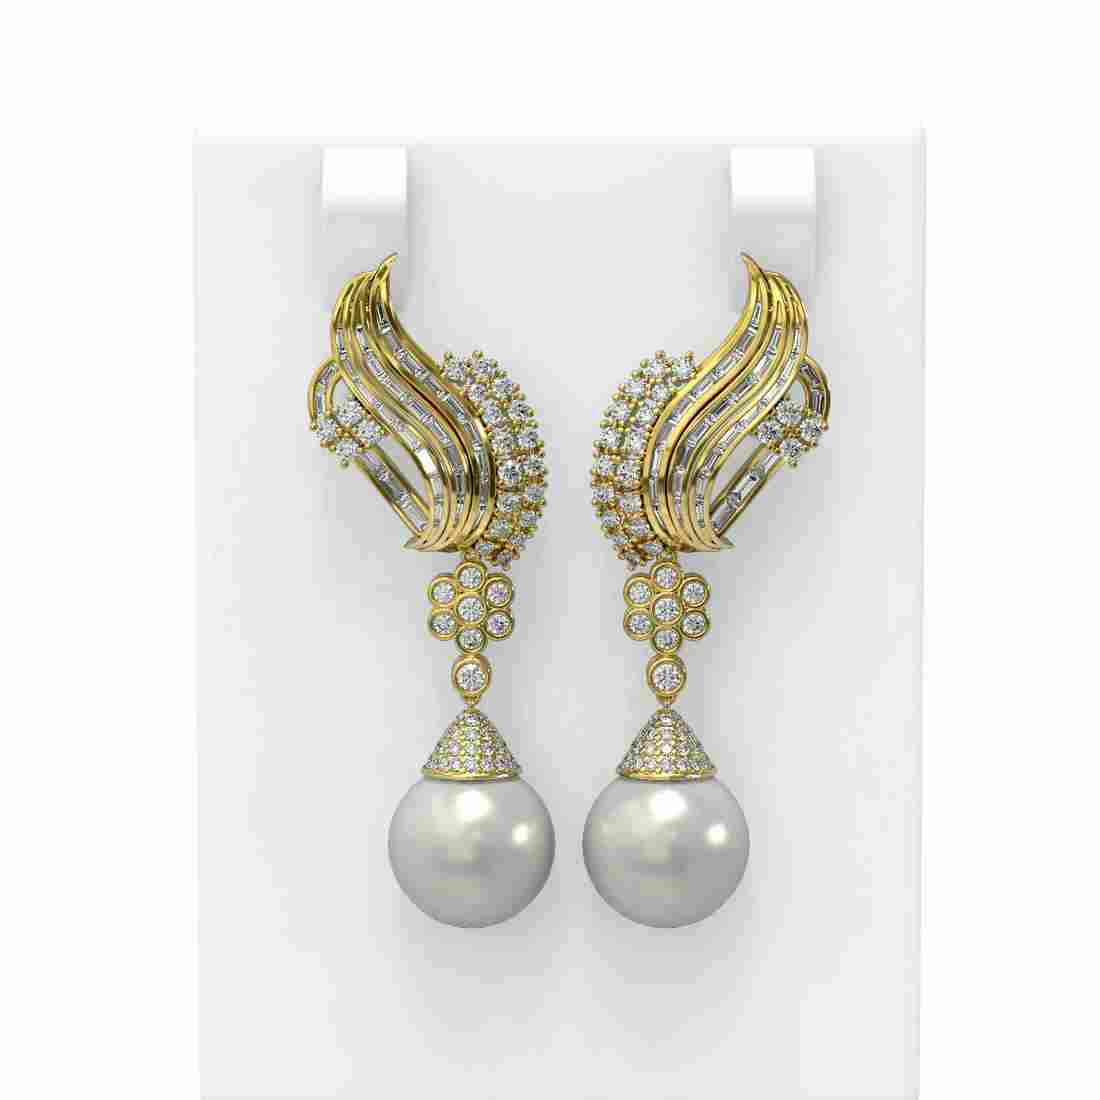 3.73 ctw Diamond & Pearl Earrings 18K Yellow Gold -